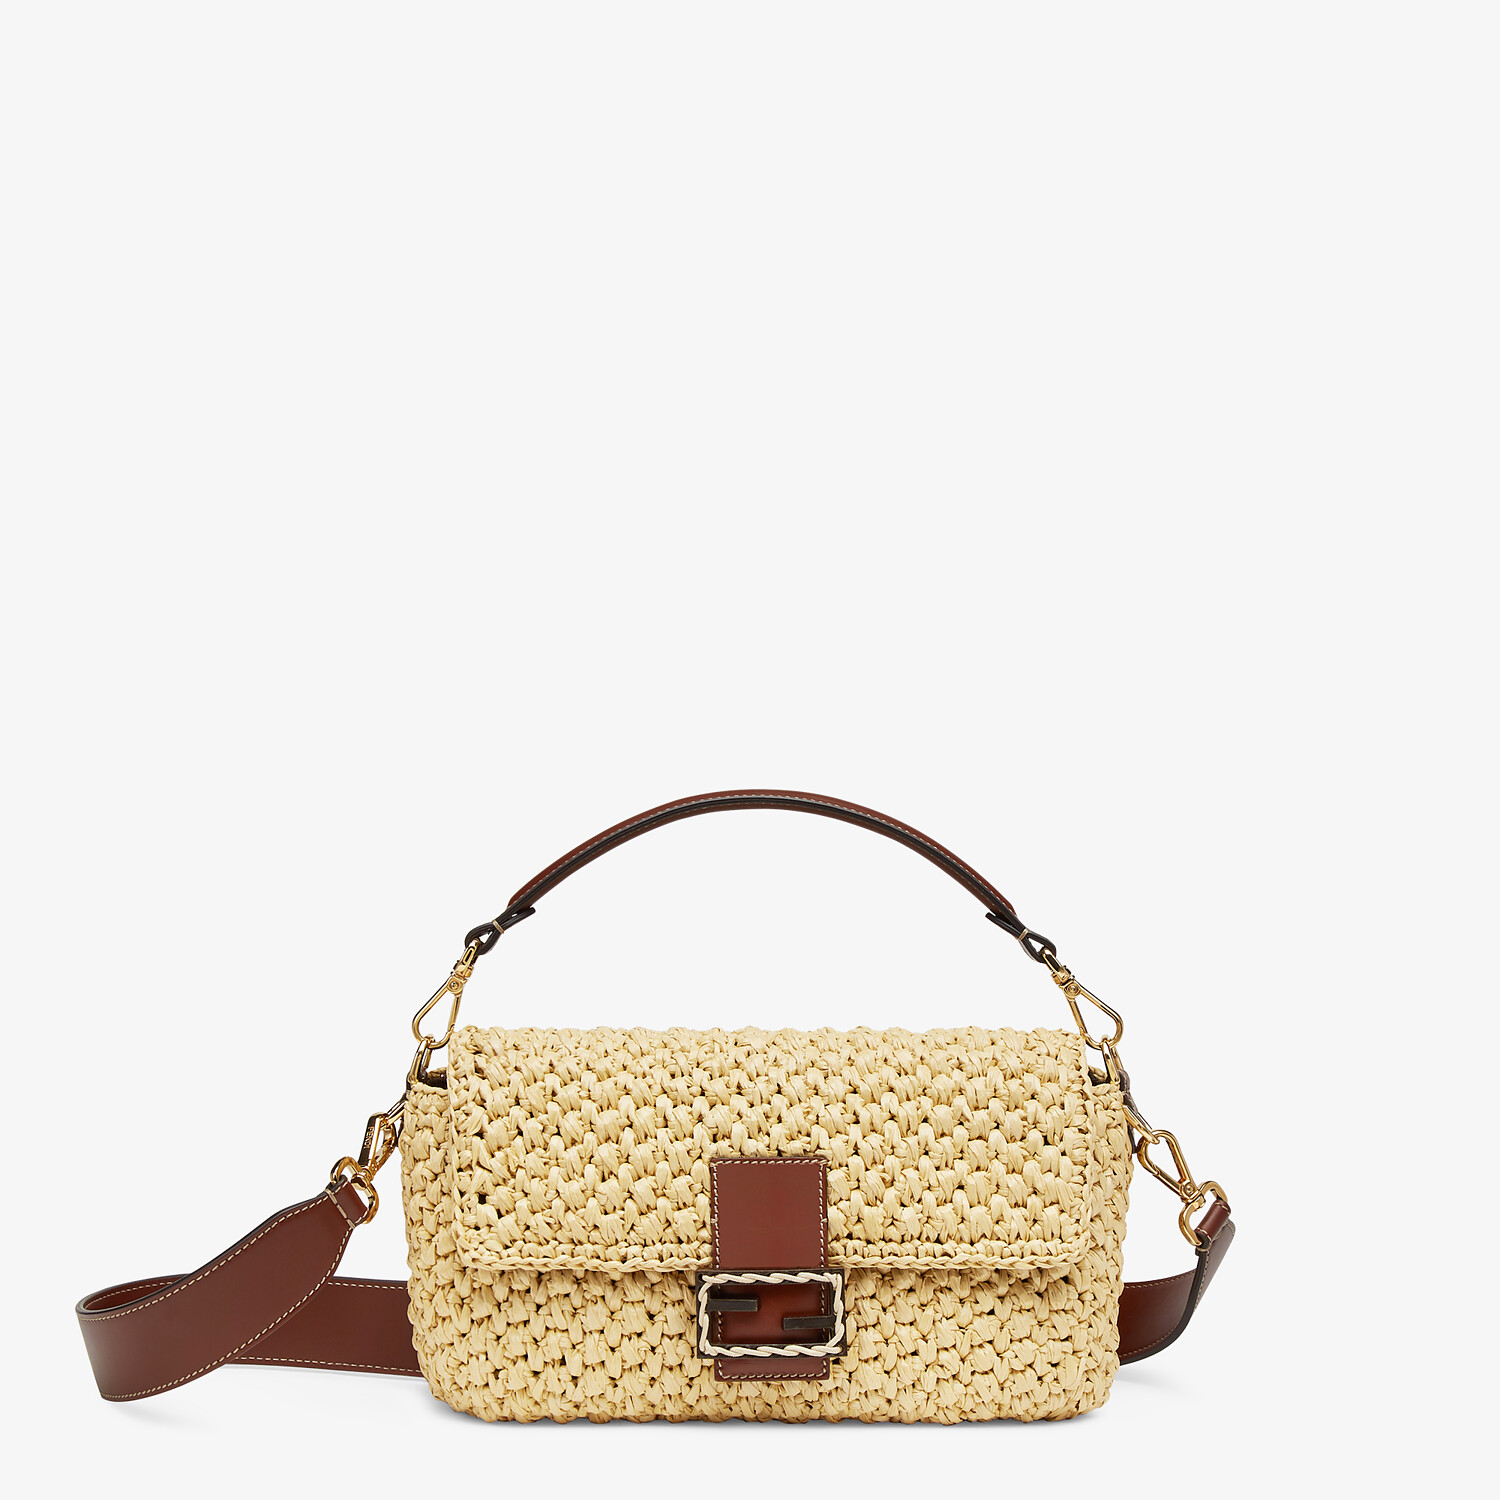 FENDI BAGUETTE - Woven straw bag - view 1 detail